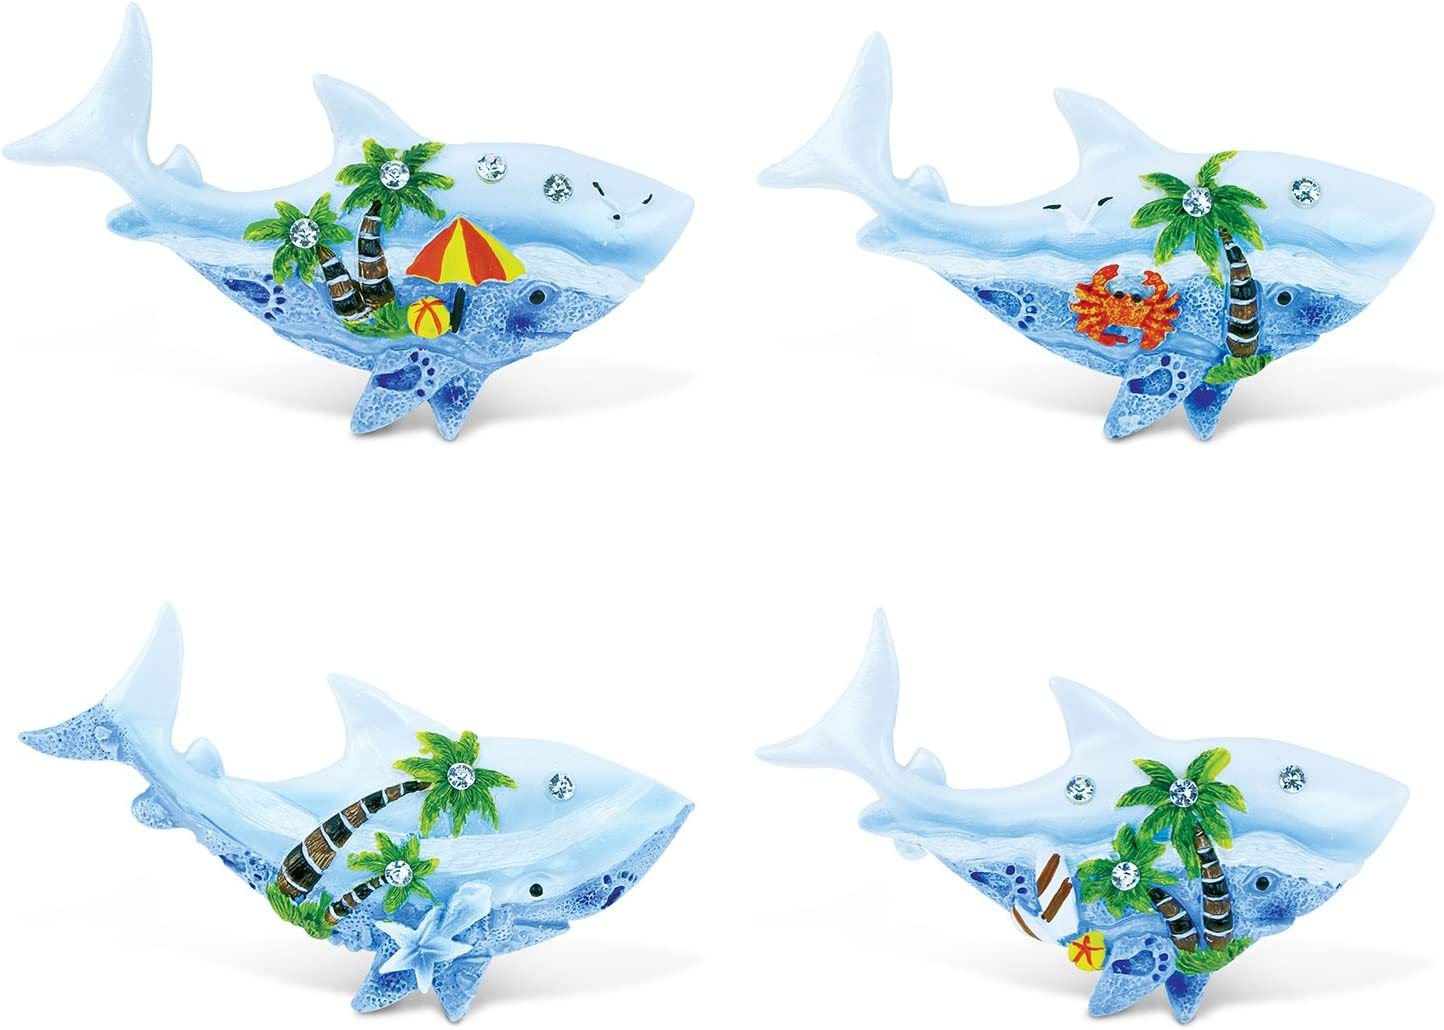 Puzzled Shark Refrigerator Blue Sand Magnet - Ocean Life Theme - Set of 4 - Unique Affordable Gift and Souvenir - Item #7677